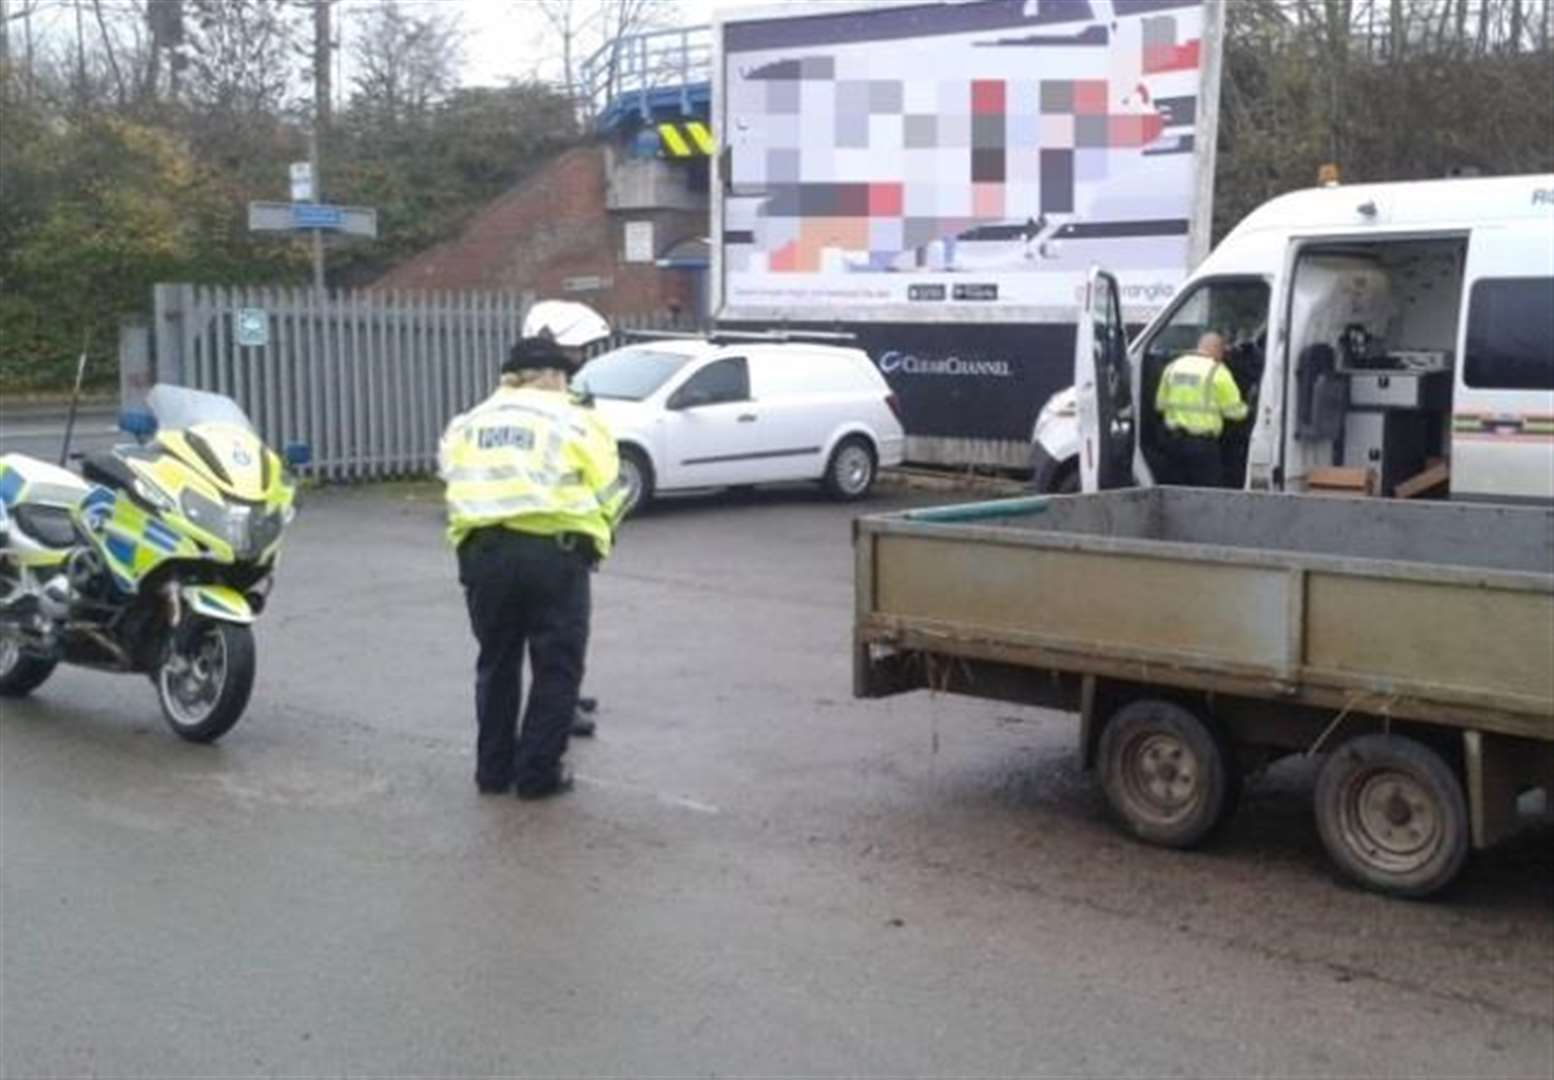 Roadside checks reveal string offences on roads around Diss